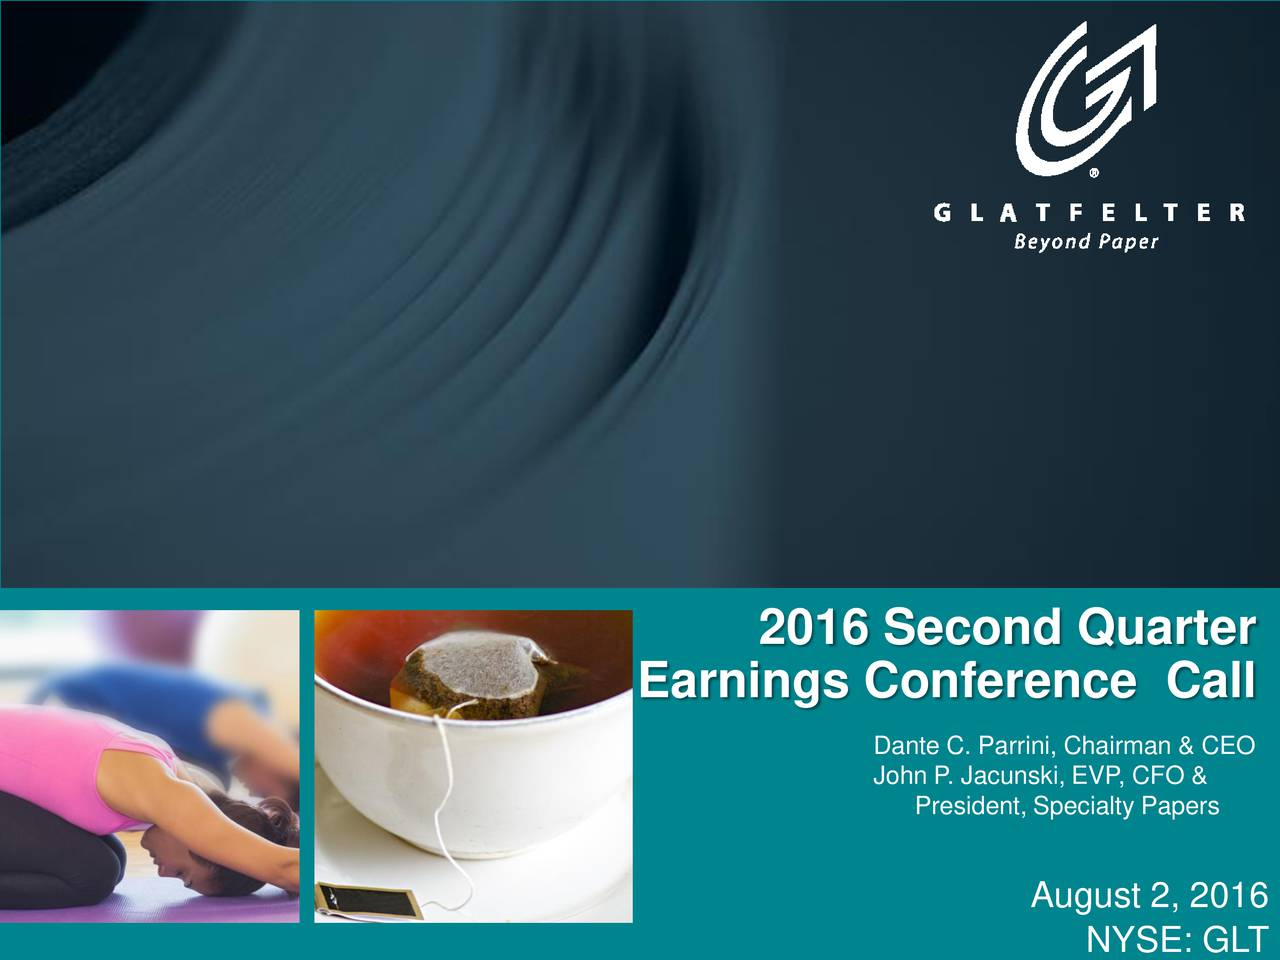 Earnings Conference Call Dante C. Parrini, Chairman & CEO John P. Jacunski, EVP, CFO & President, Specialty Papers August 2, 2016